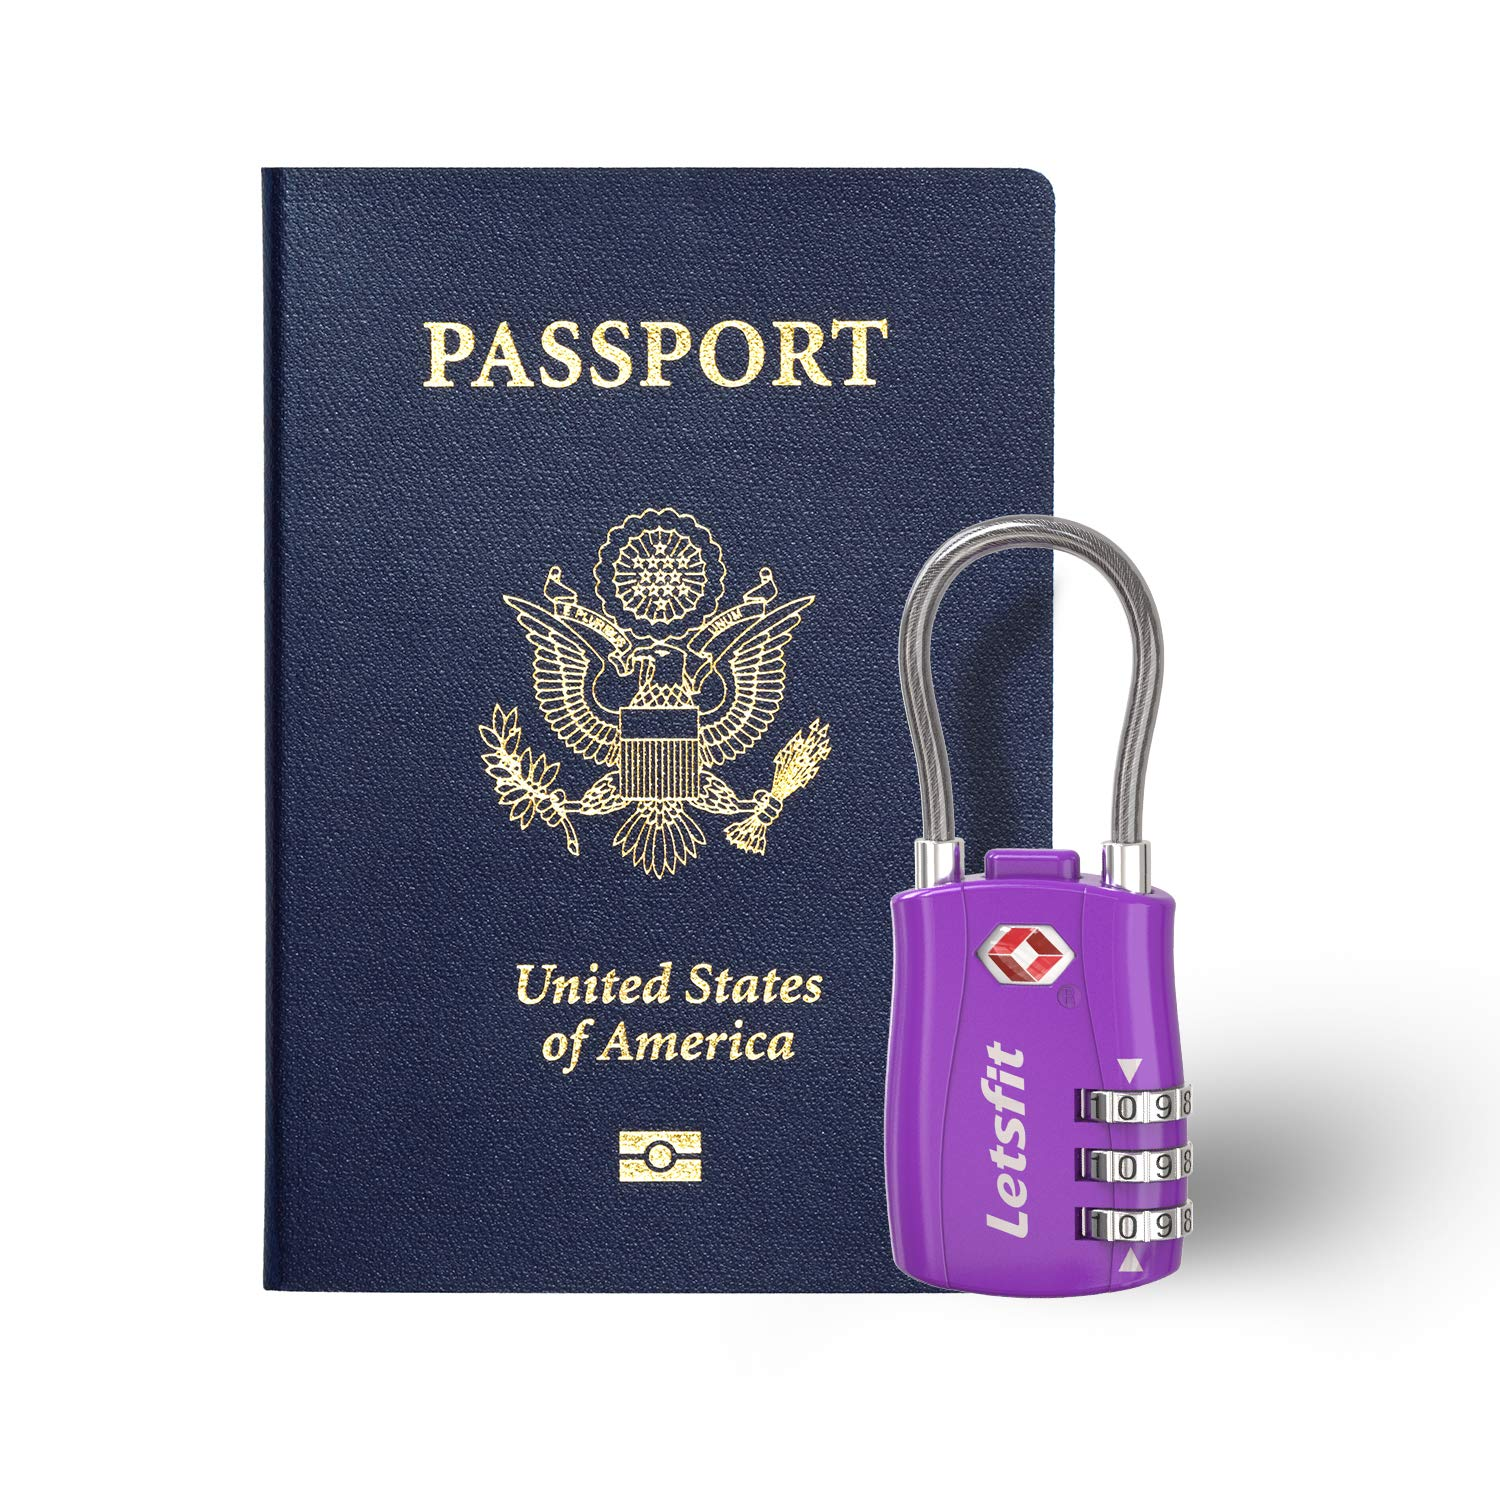 TSA Approved Luggage Locks, Letsfit Travel Combination Cable Luggage Locks, Easy Read Dials, Alloy Body - Ideal for Travel, Lockers, Bags, 4 Pack Purple